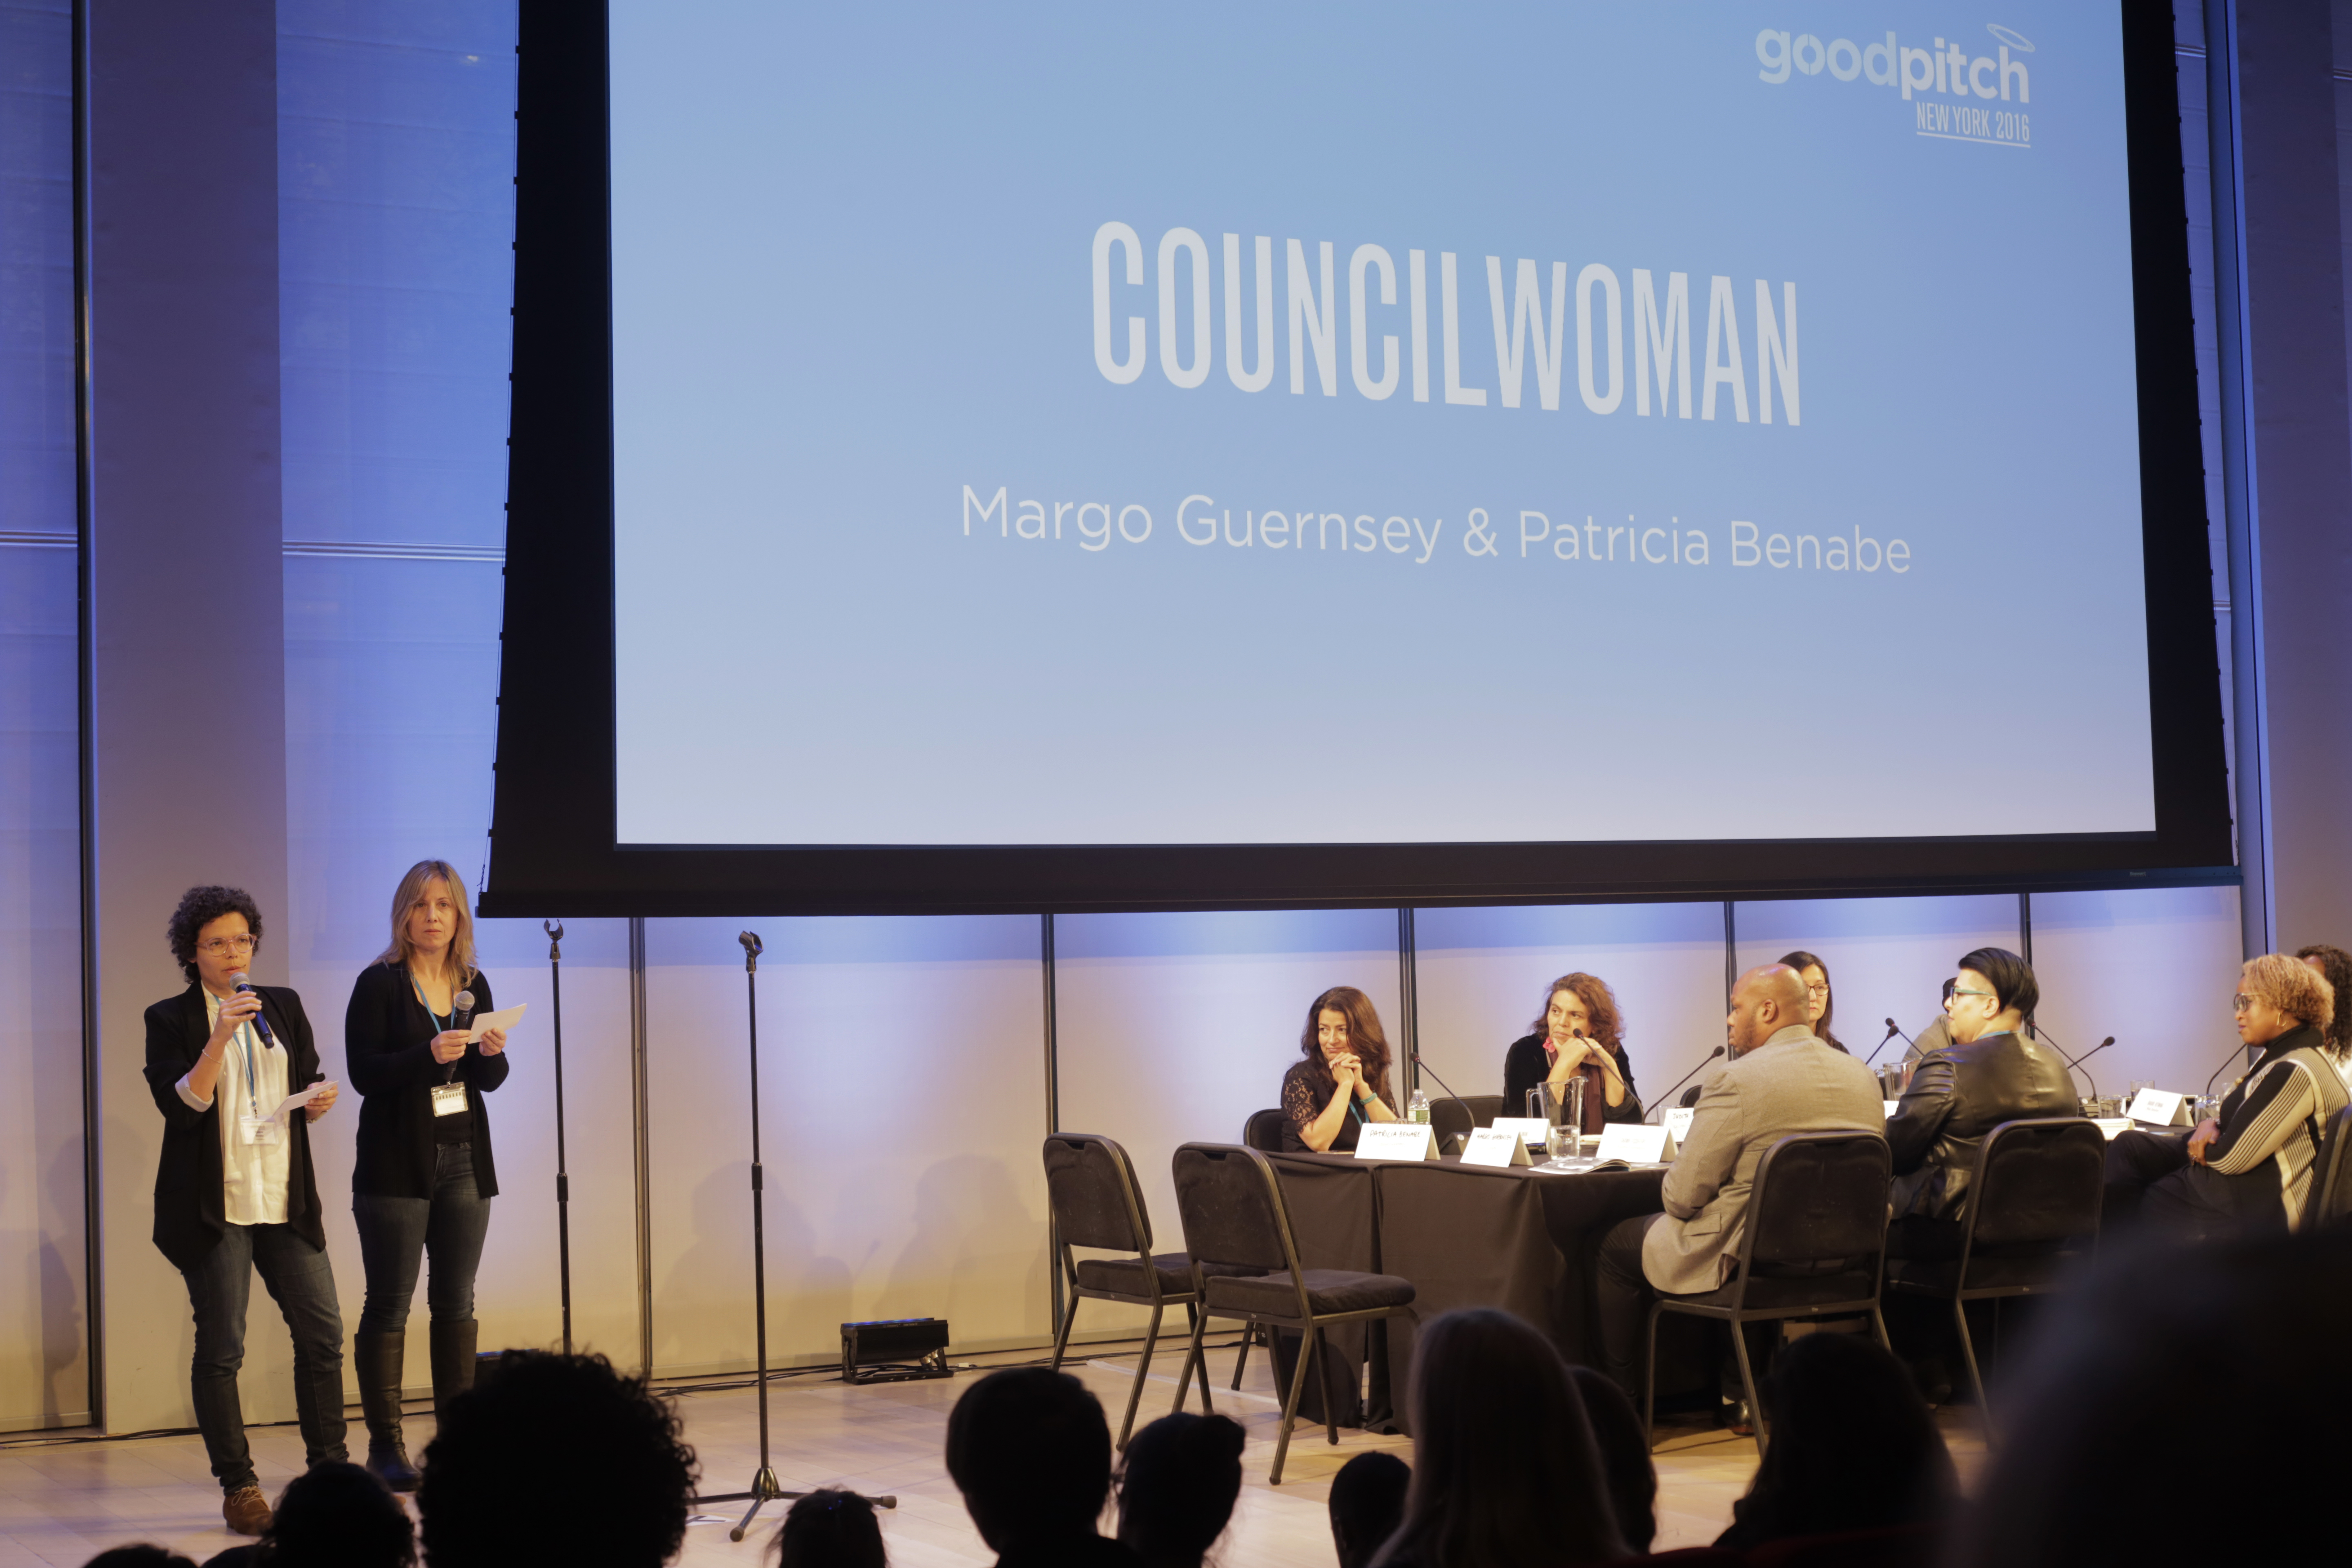 Pitch Time! COUNCILWOMAN film team pitches at Britdoc's GoodPitch NYC 2016